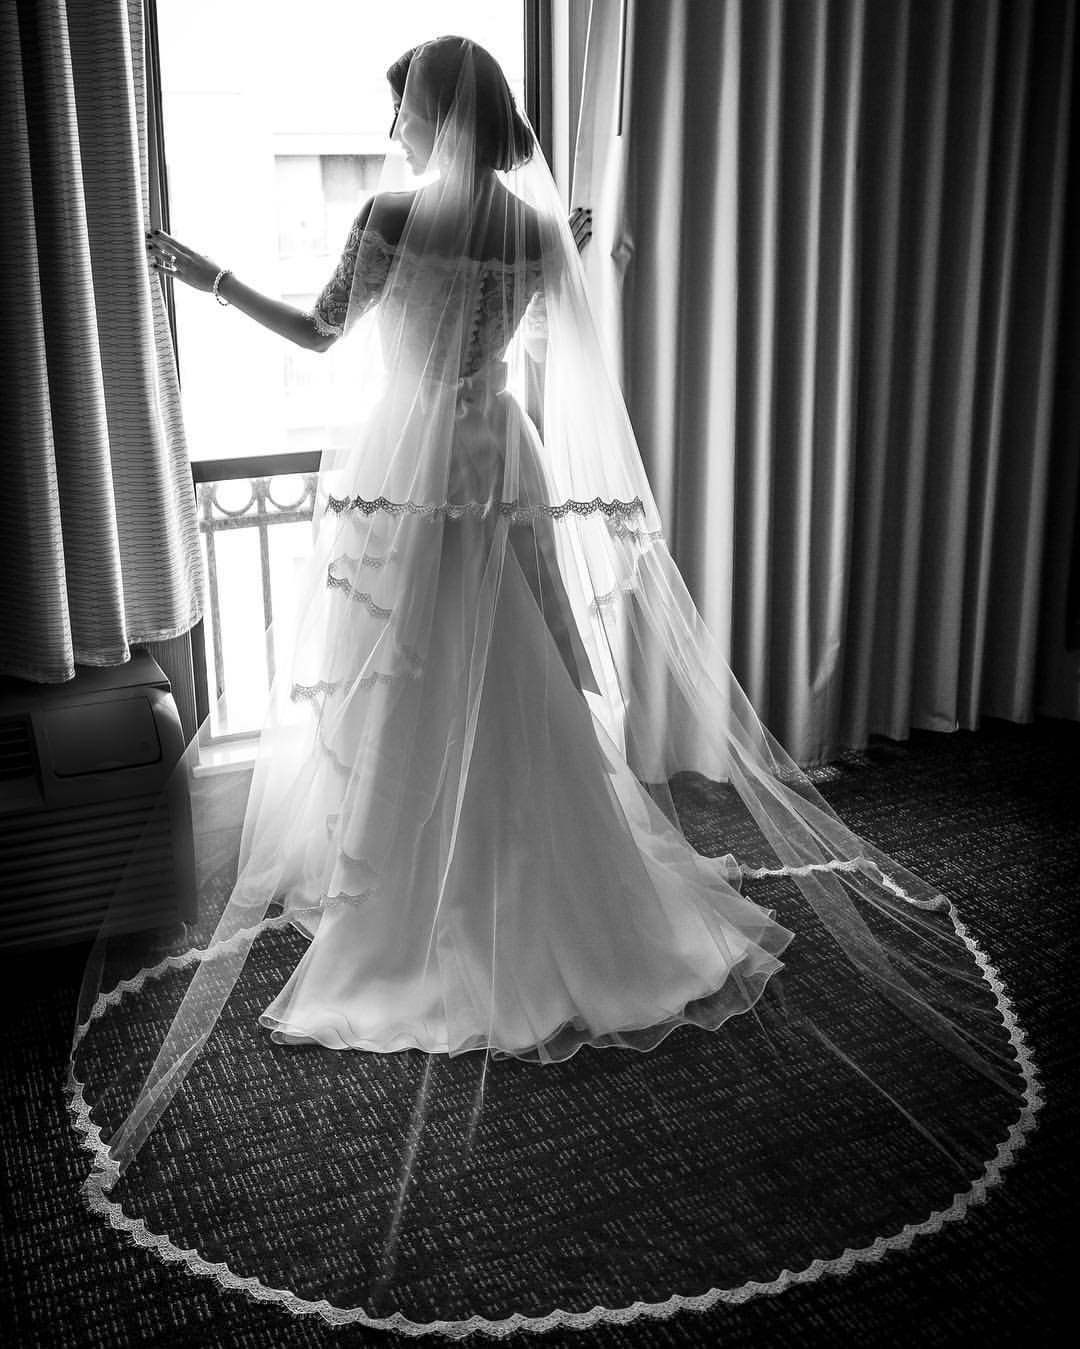 Classic elegance. The dress reflects on the window coverings creating a glow around the bride. #Marriage #Wedding #WeddingDay #GettingReady #Bride #Dress #WeddingDress #elegantdress #Elegant #Classic #LuxuryWedding #WeddingPlanner #LAWeddingPlanner #Orang